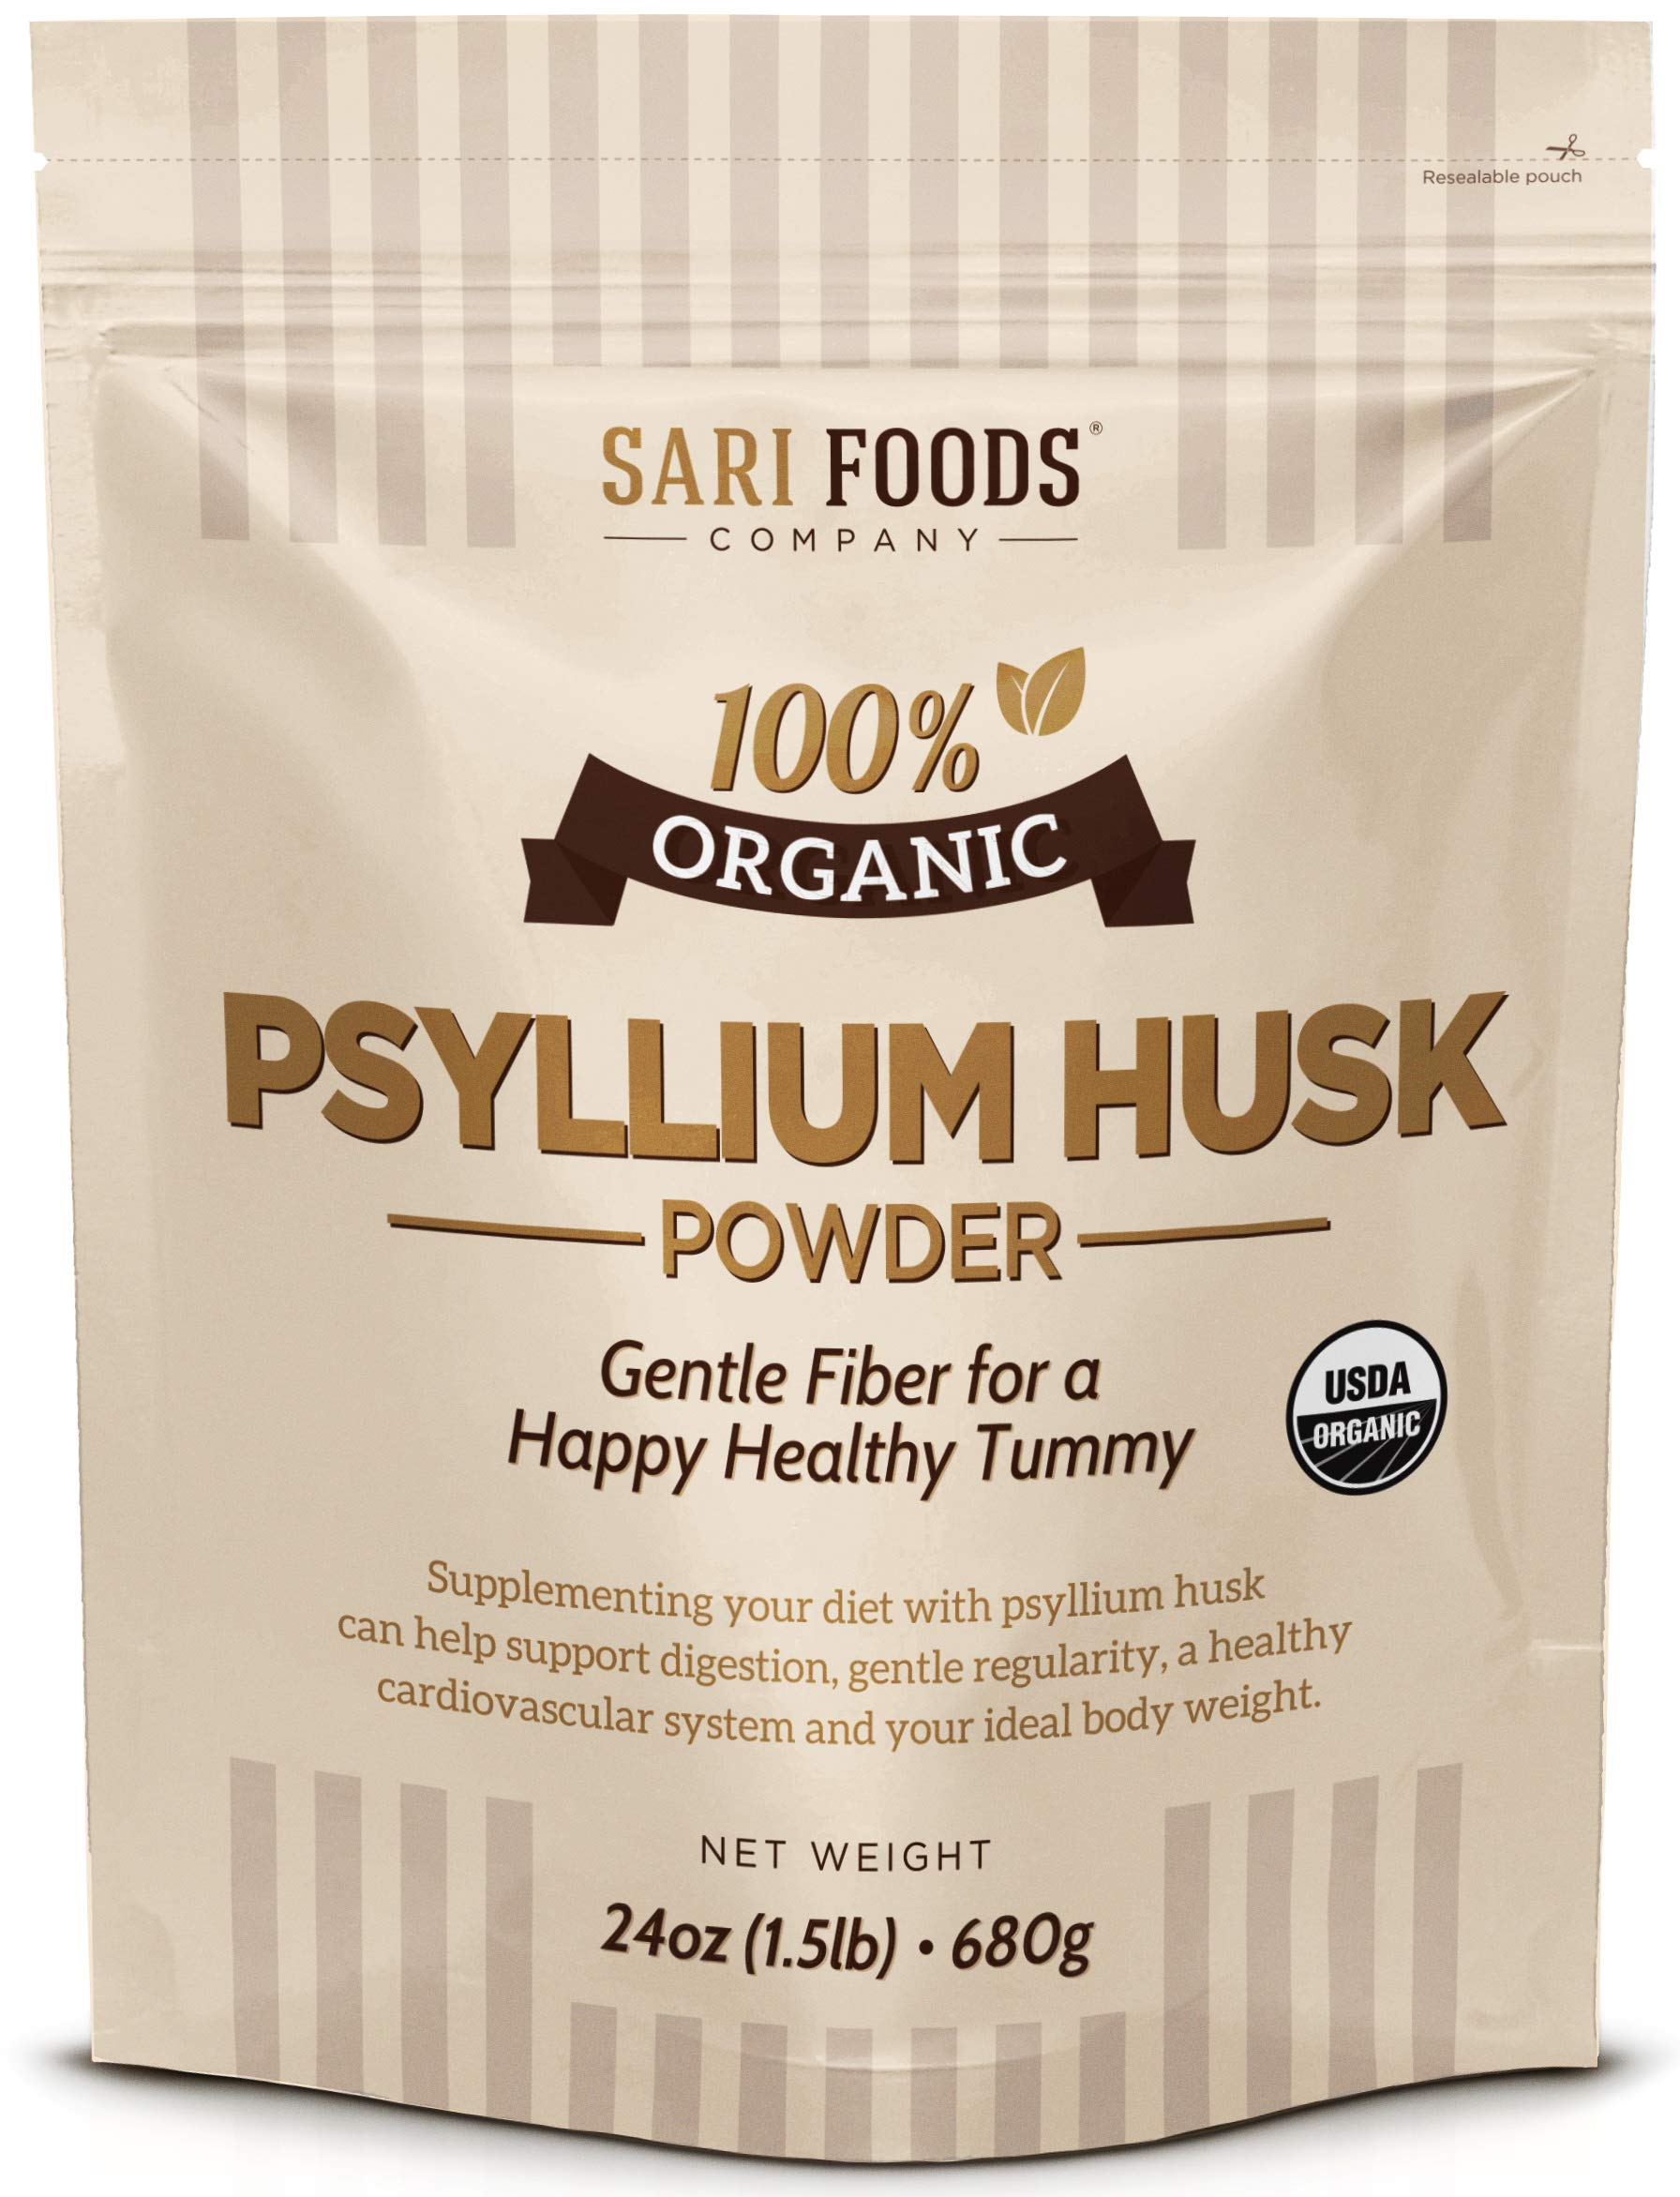 Pure Organic Psyllium Husk Powder (24oz): 100% Natural, Whole Food, Plant Based Fiber superfood: Supports Digestion, Gentle Regularity, a Healthy Heart, and Your Ideal Body Weight by Sari Foods Co